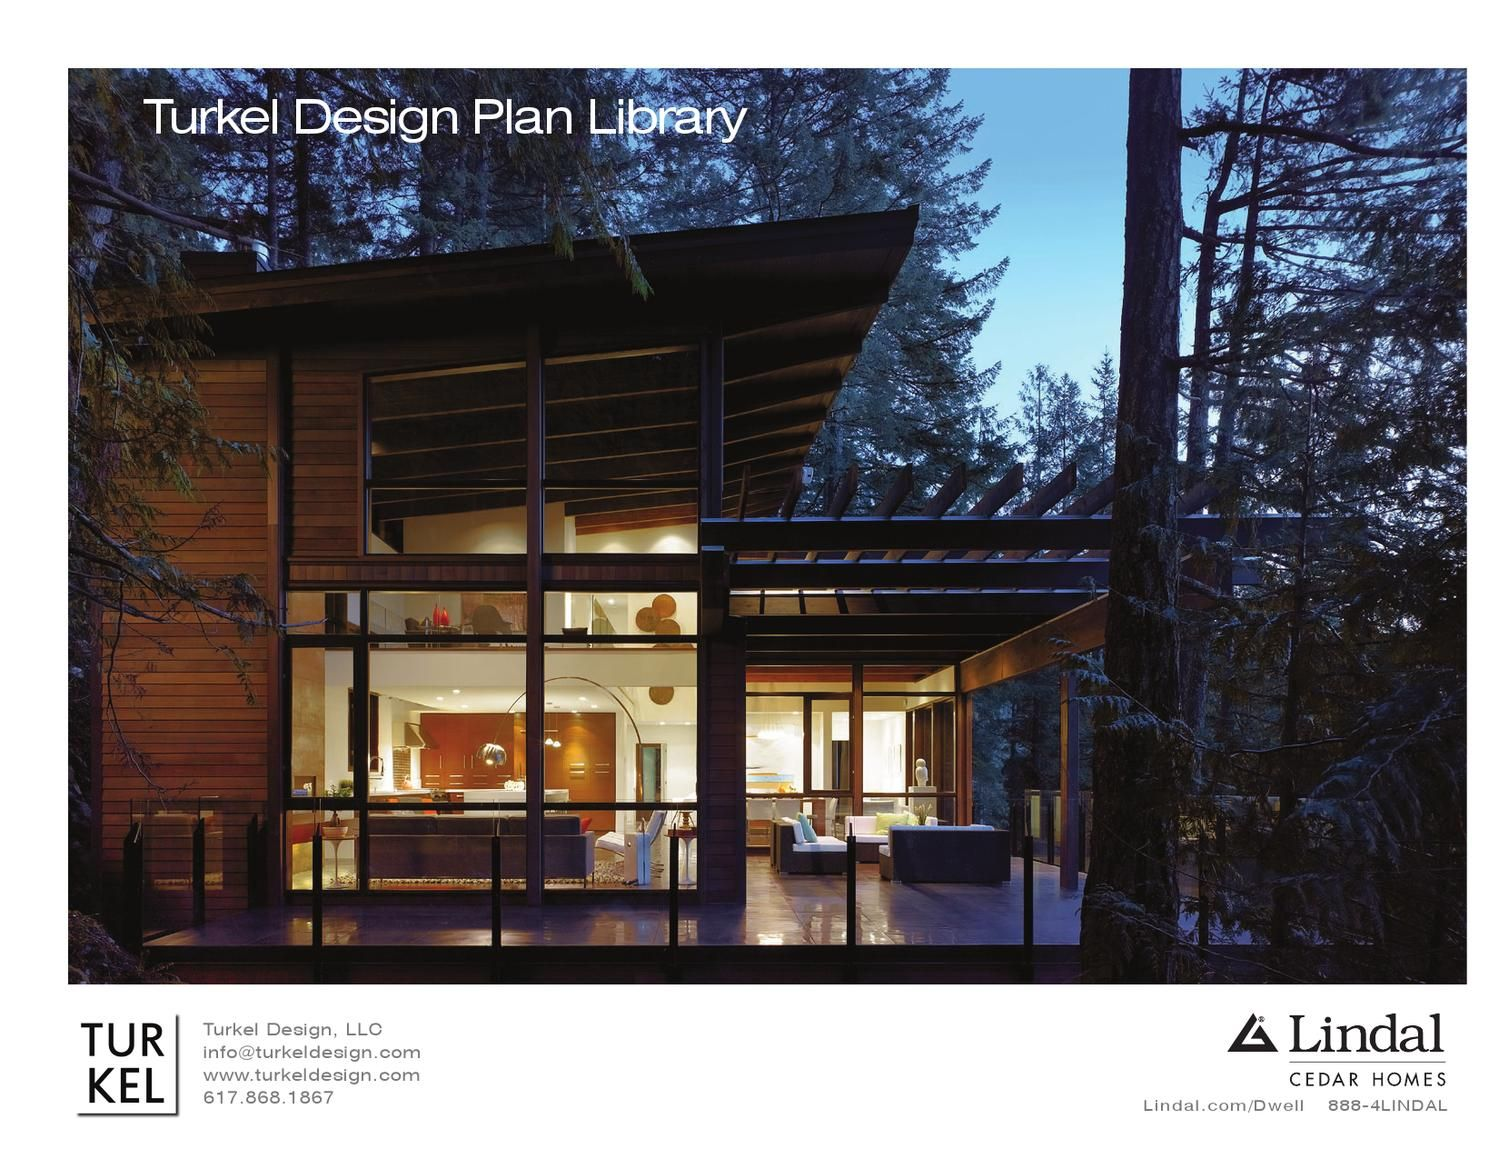 Turkel Design Plan Library Architecture